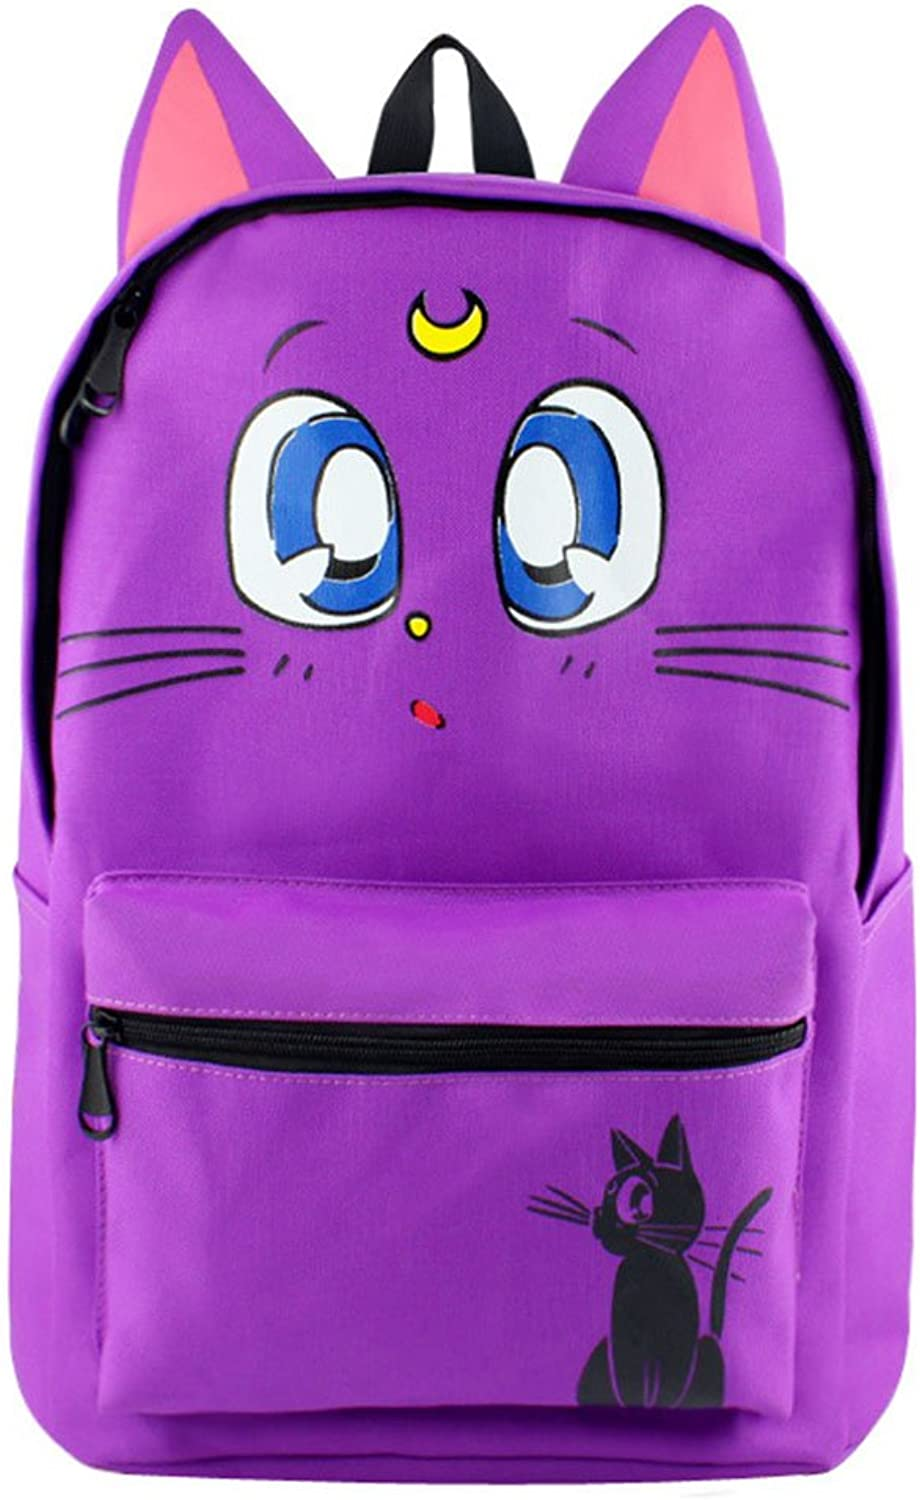 Gumstyle Anime Sailor Moon Canvas Backpack with Ears Rucksack Schoolbag Shoulder Bag for Boys and Girls